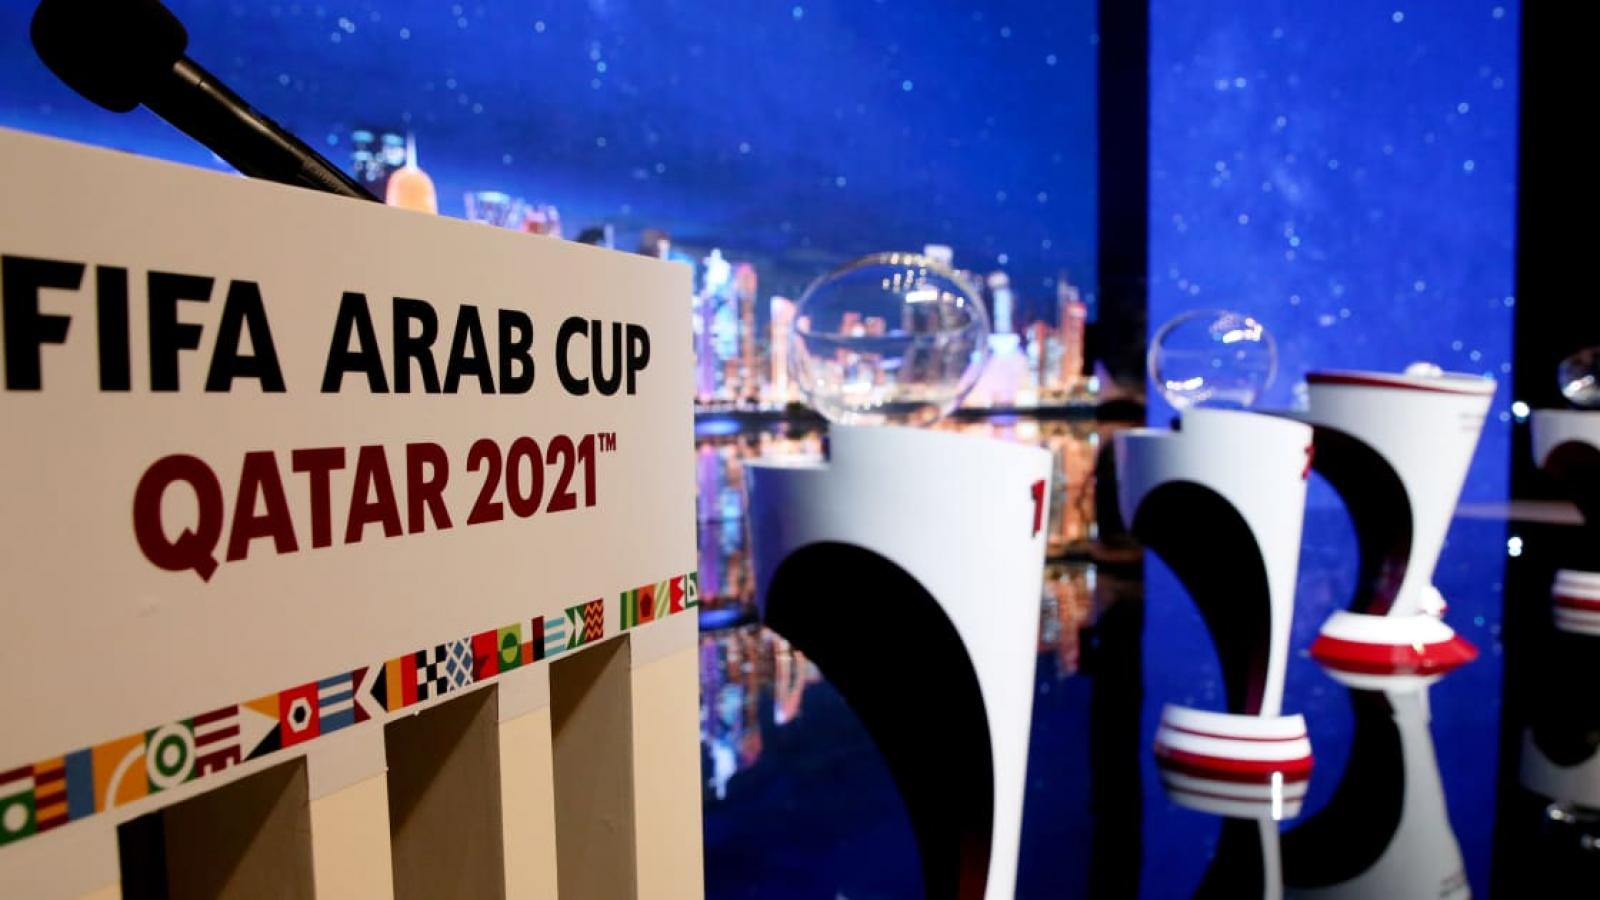 FIFA Arab Cup Qatar 2021 draw set to take place today